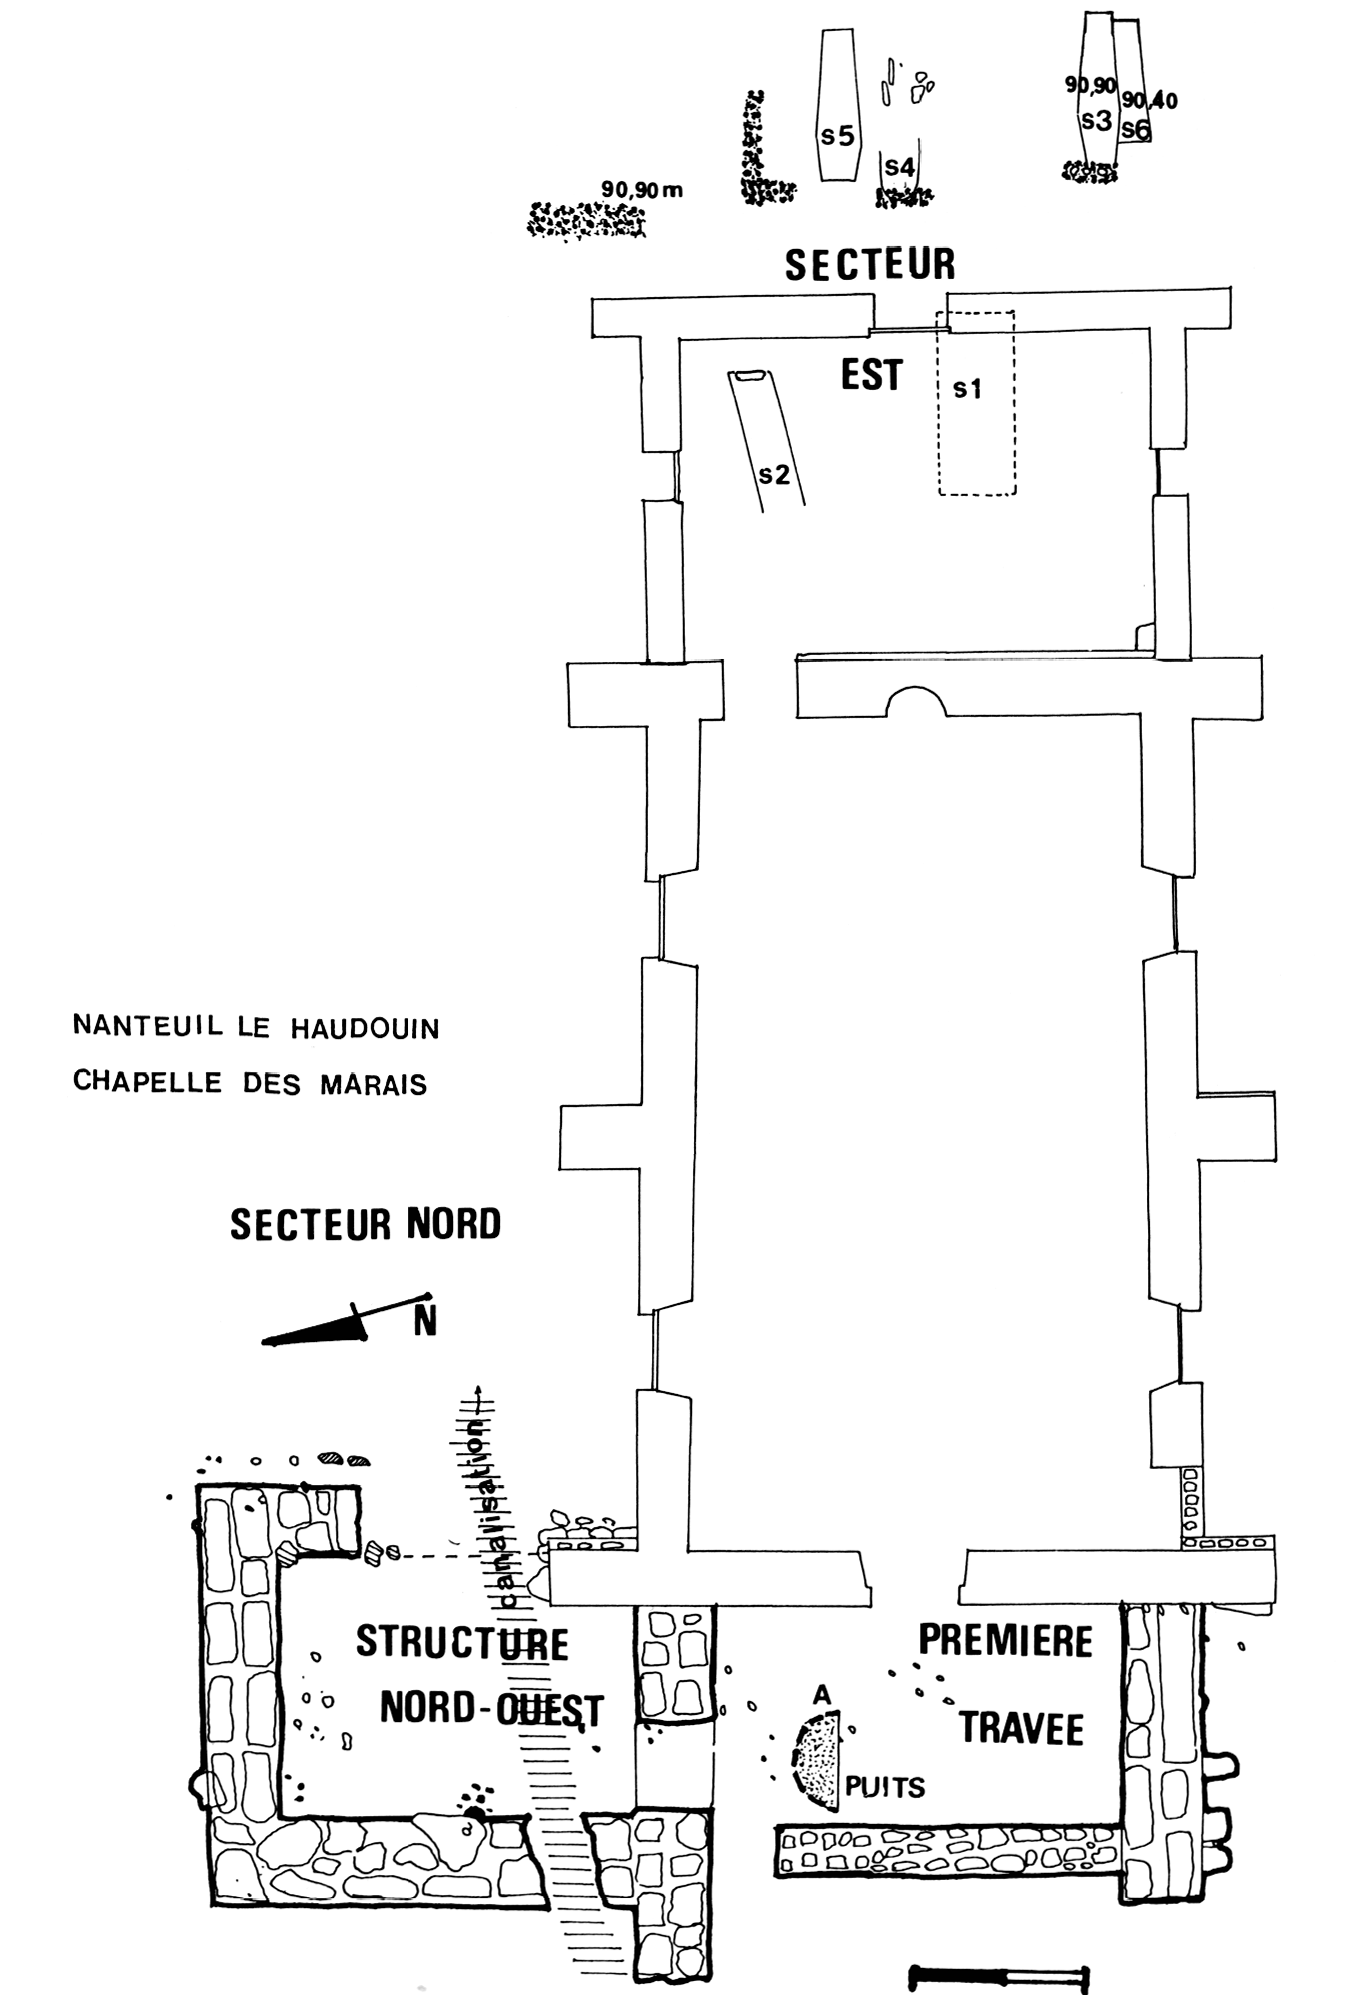 a ground plan of the chapel showing where burials were uncovered and evidence of previous buildings found during archaeological excavations